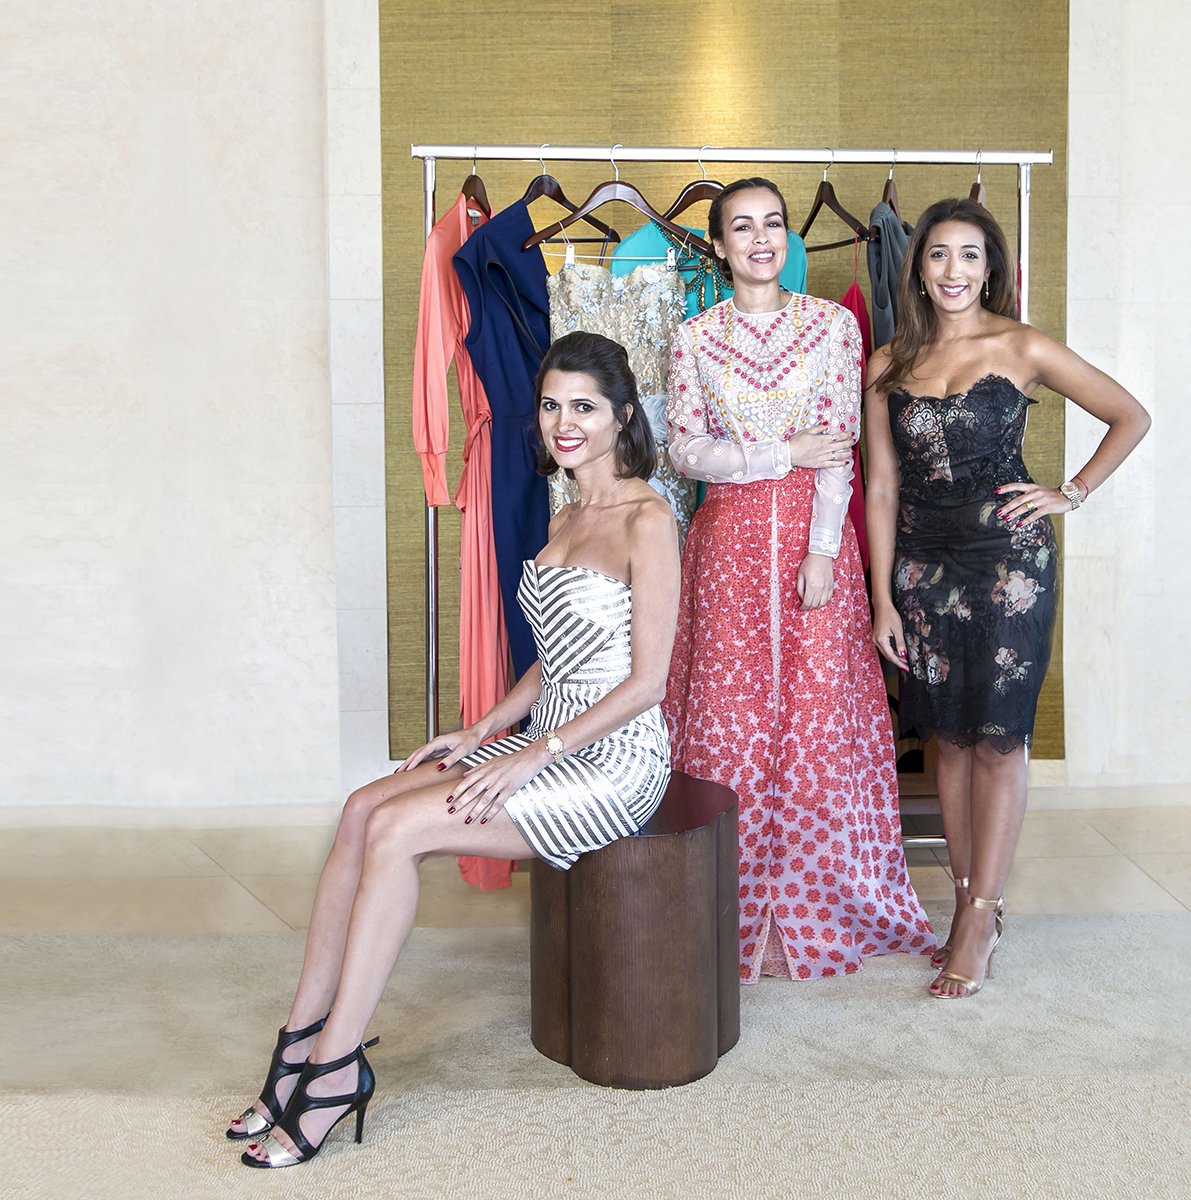 Introducing Designer-24: Dubai's First-Ever Luxury Dress Rental Service